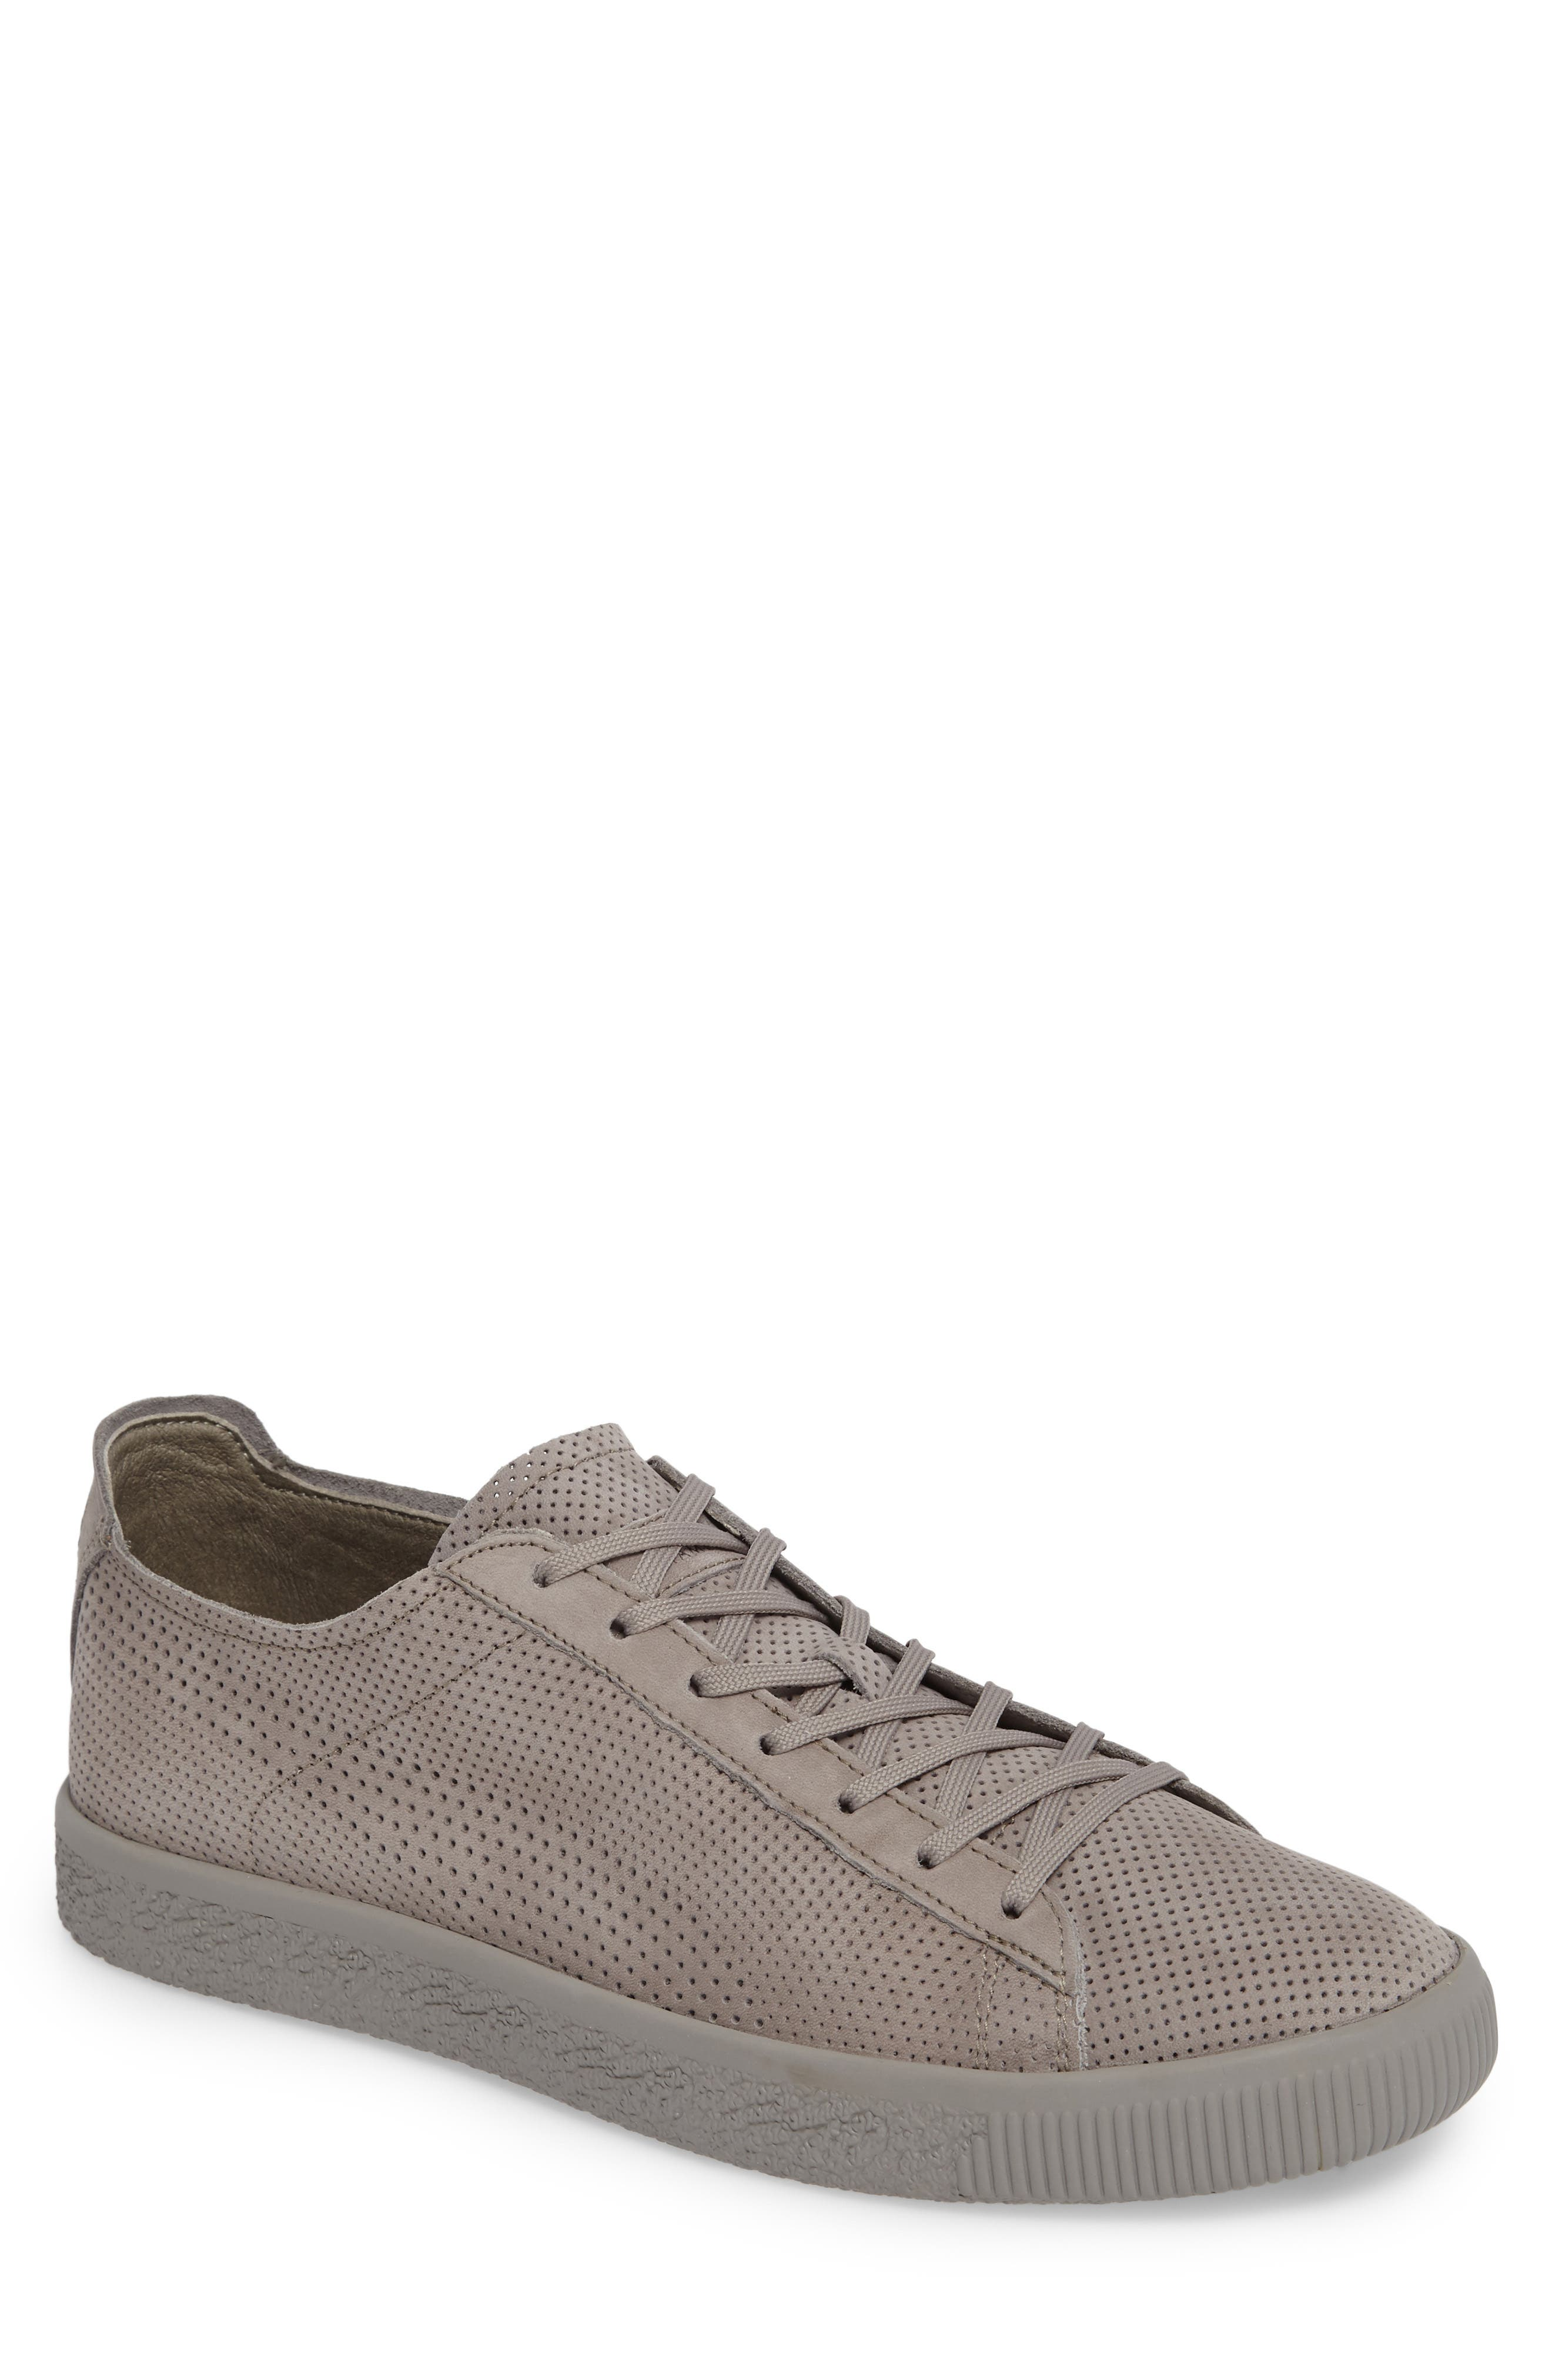 Stampd Clyde Sneaker,                             Main thumbnail 1, color,                             Drizzle/ Drizzle Leather